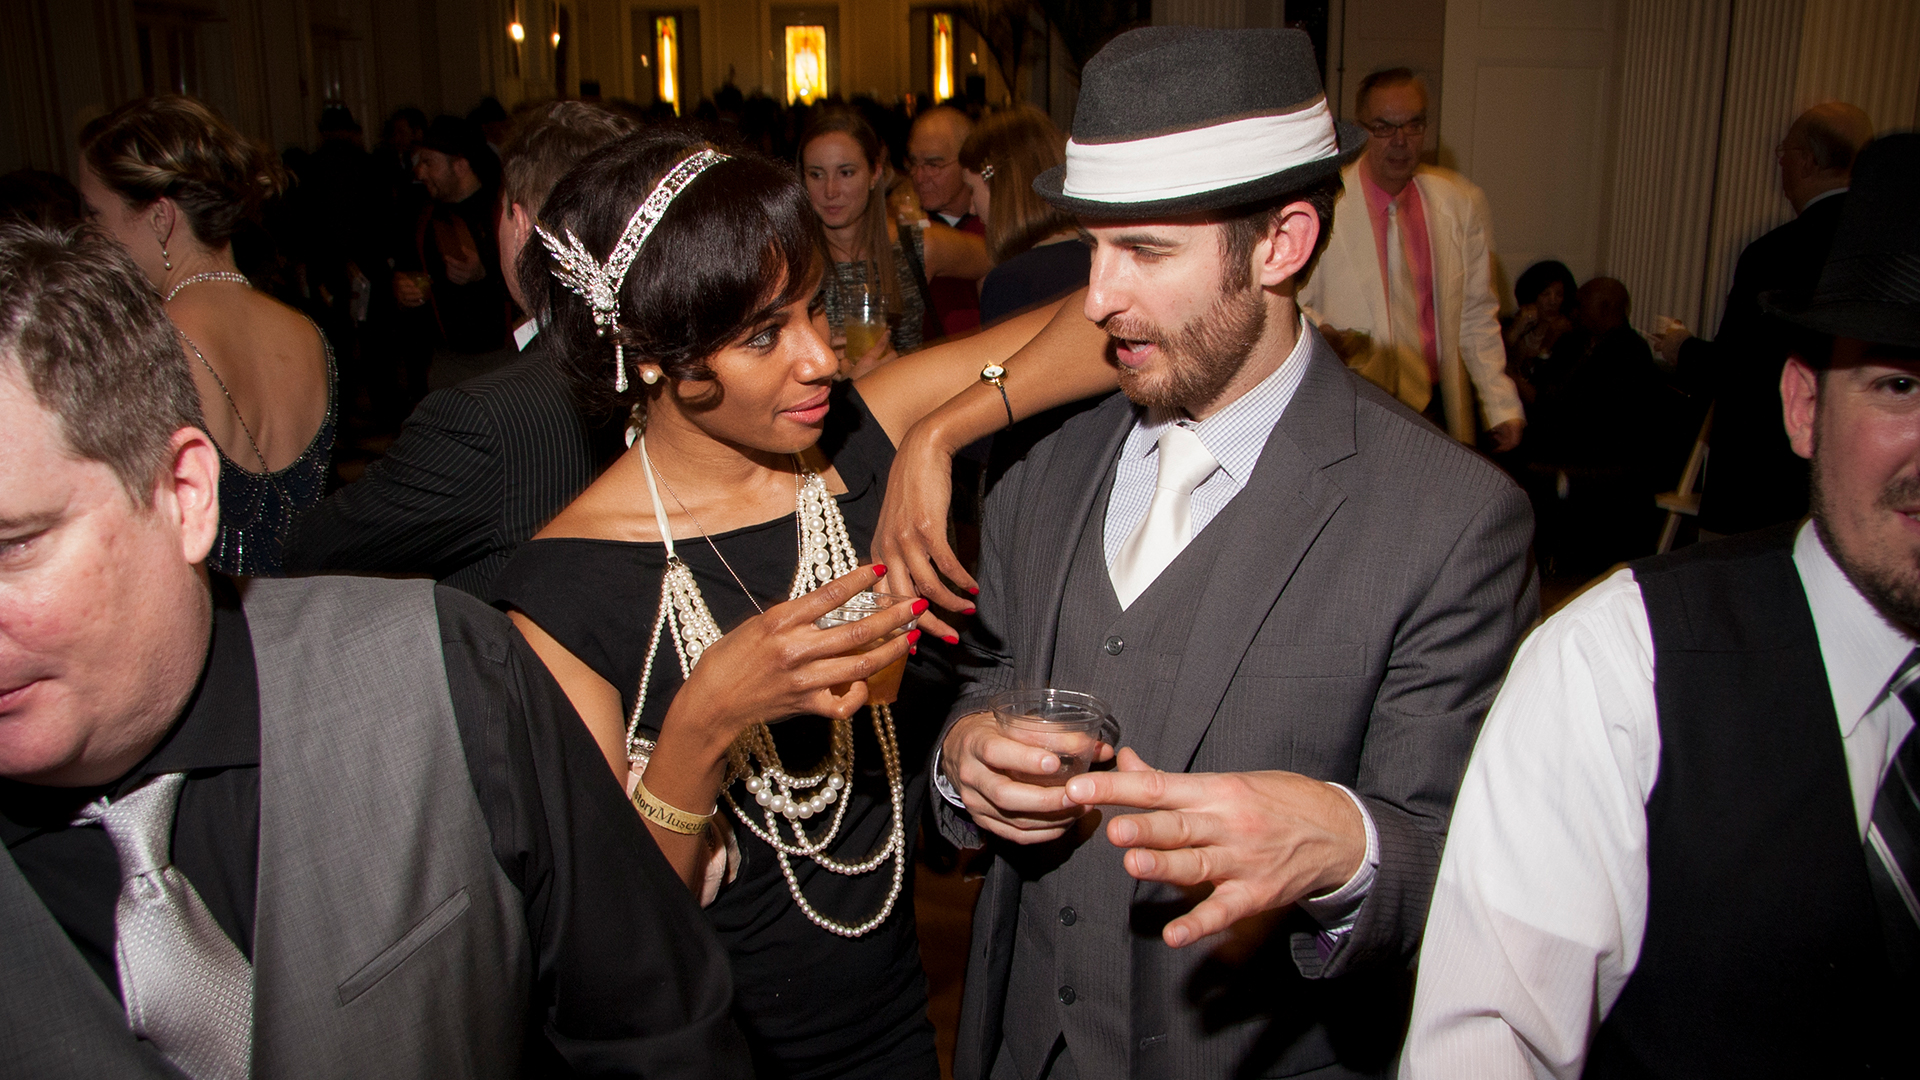 A couple dressed in Prohibition era clothing chatting and having drinks